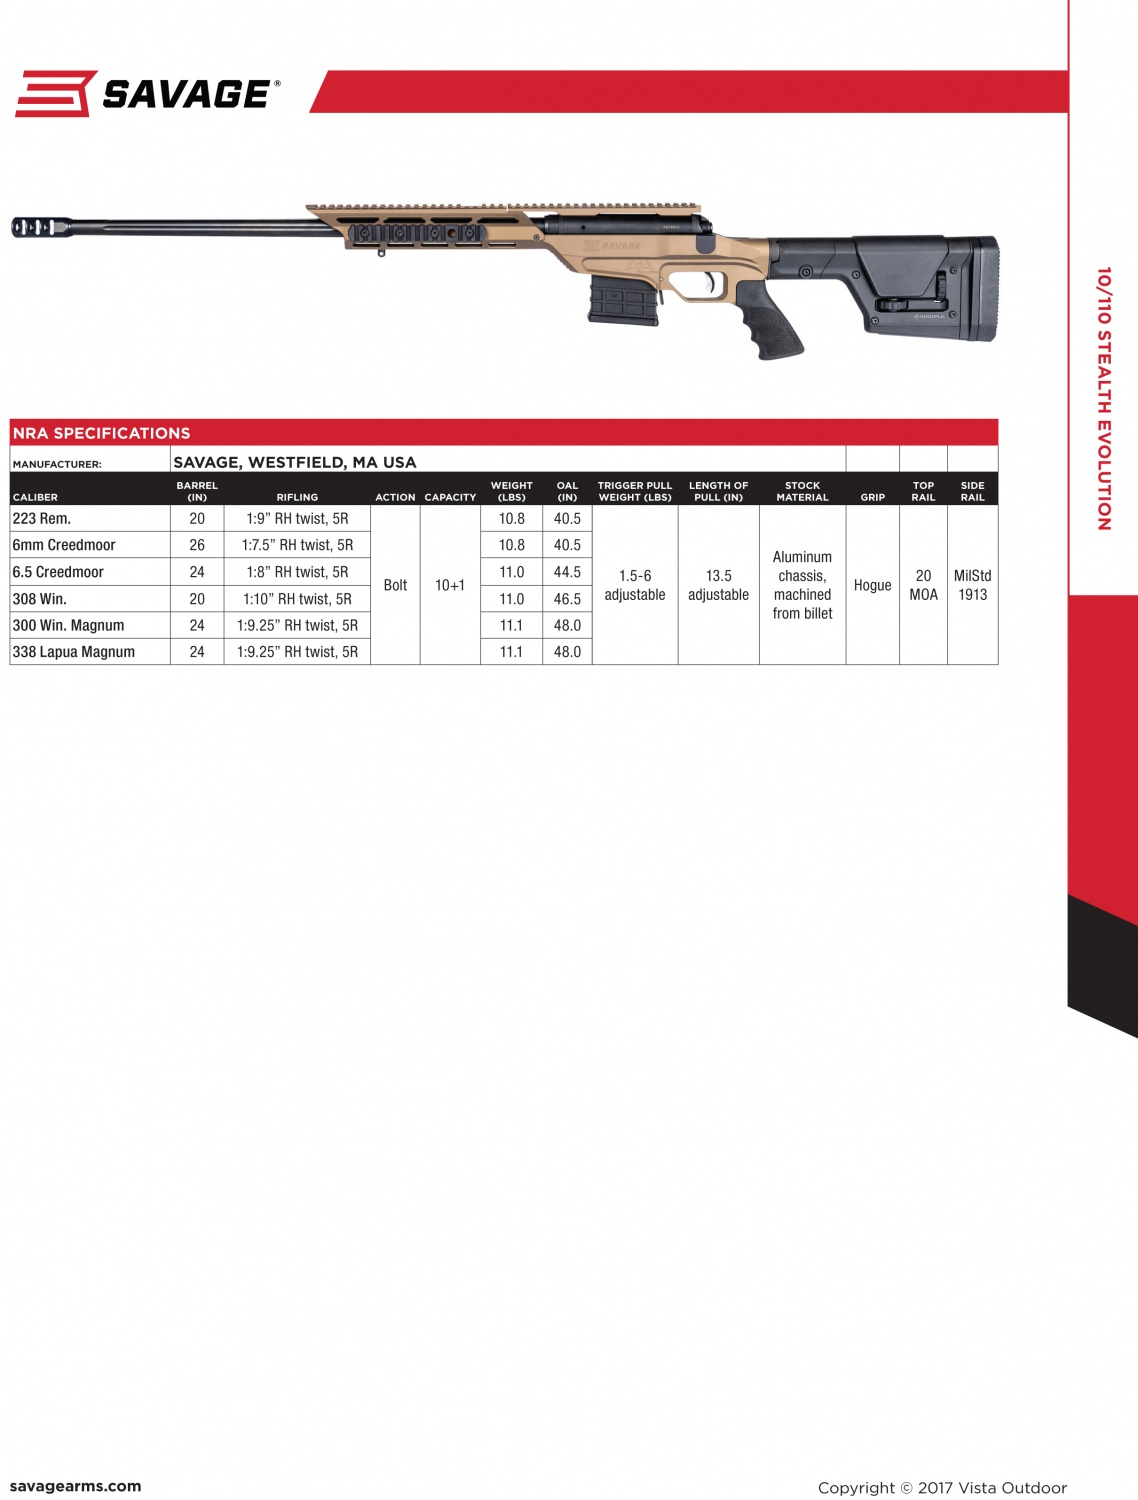 savage model 110 parts diagram simple thermostat wiring arms upgrades the 10 once more to become stealth evolution